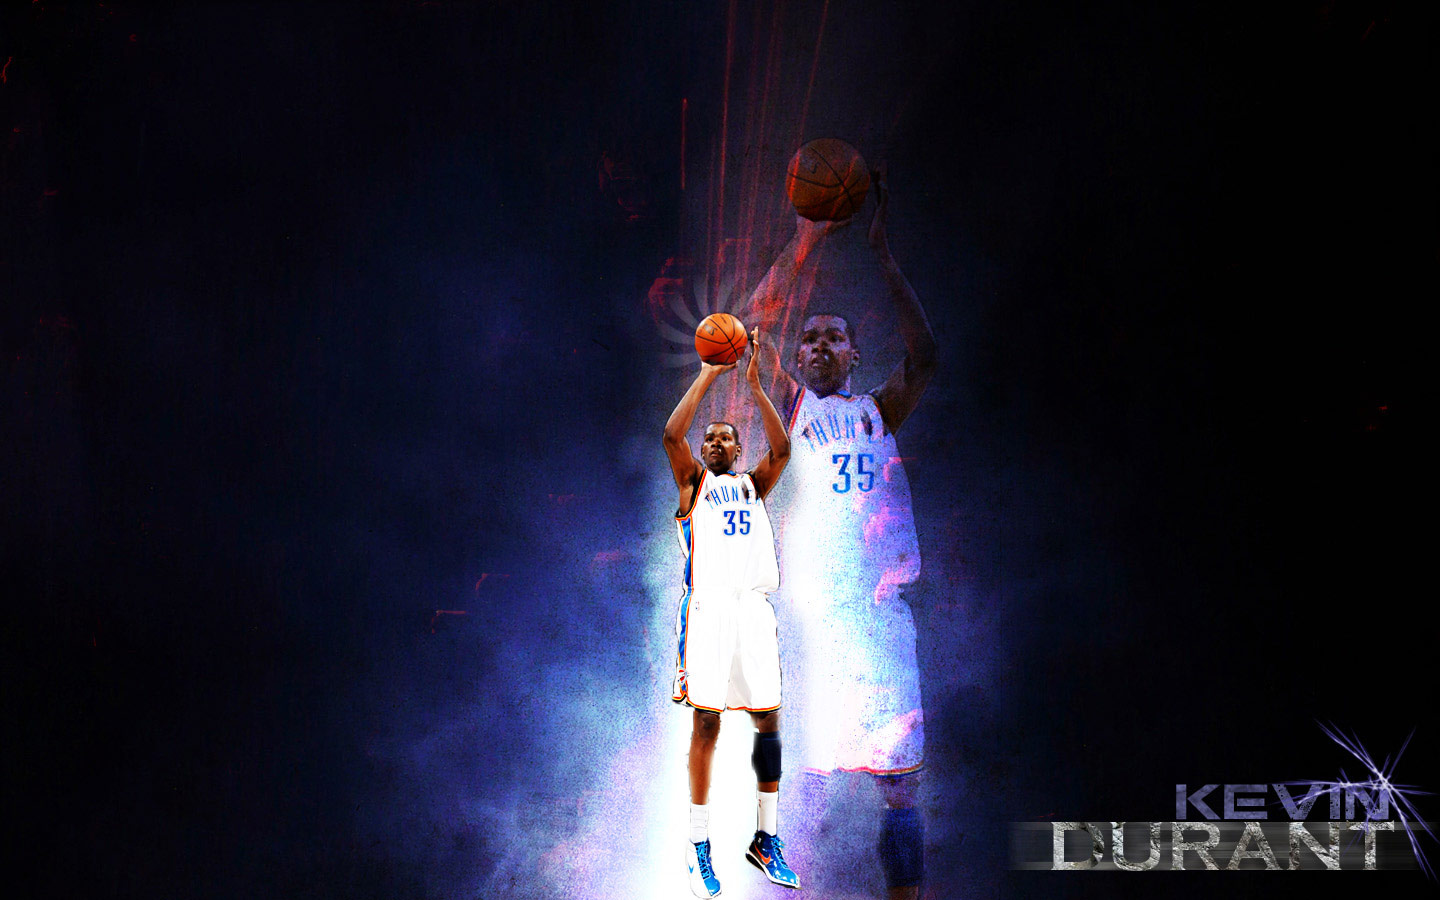 Kevin Durant Basketball Wallpapers For Android Kevin Durant 1440x900